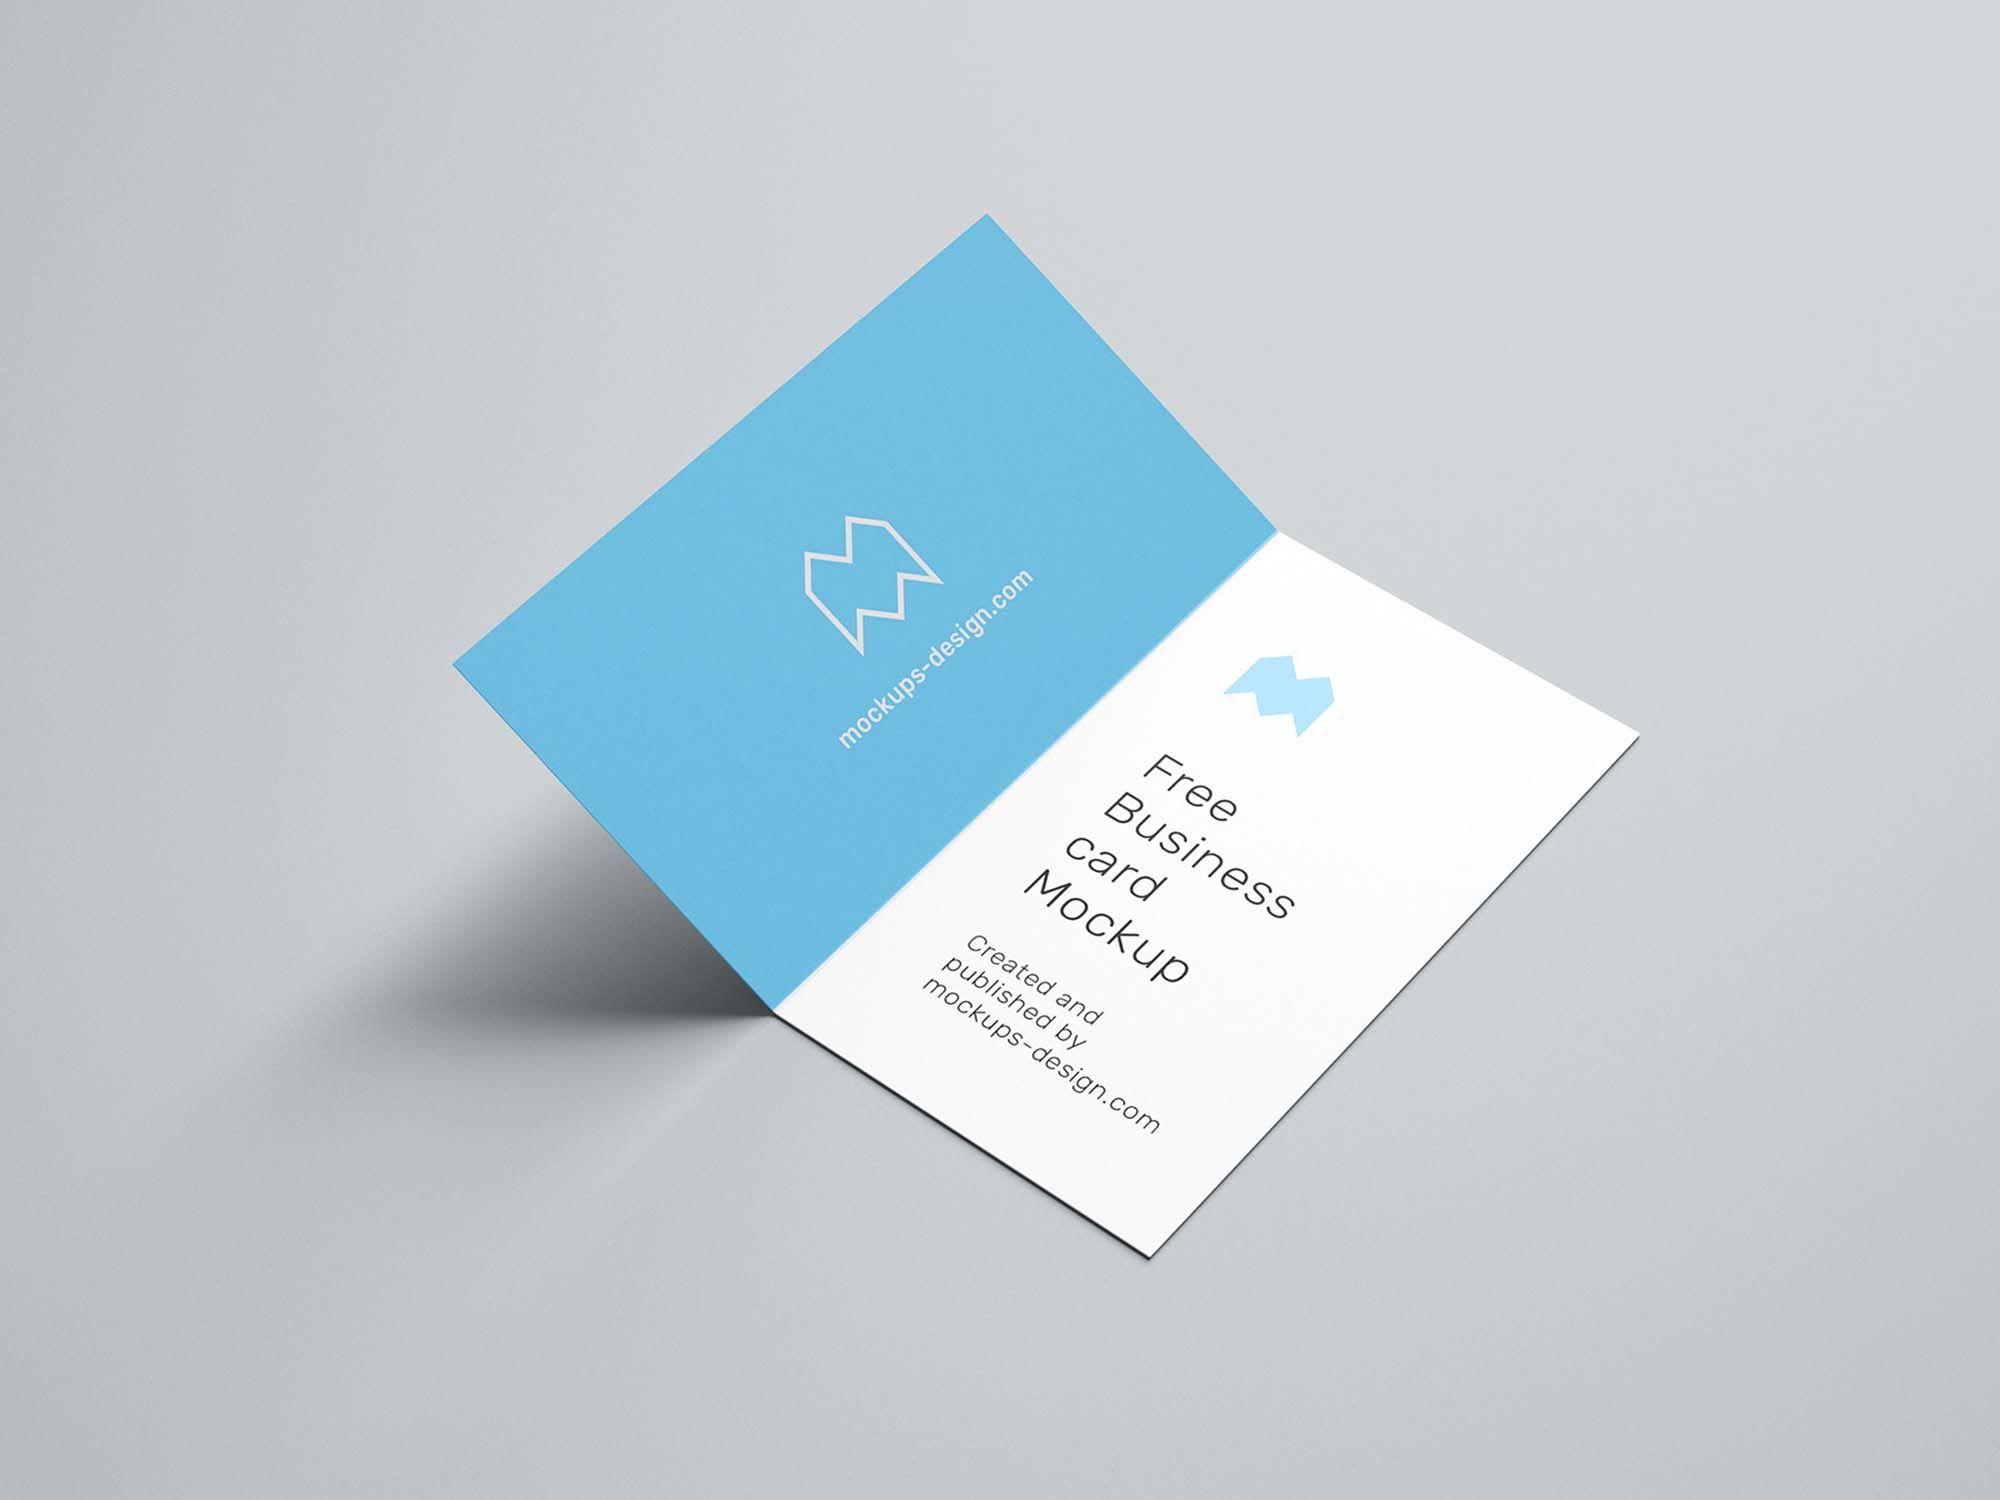 Free Folded Business Card Mockup Psd Free Business Card Mockup Business Card Mock Up Business Cards Mockup Psd